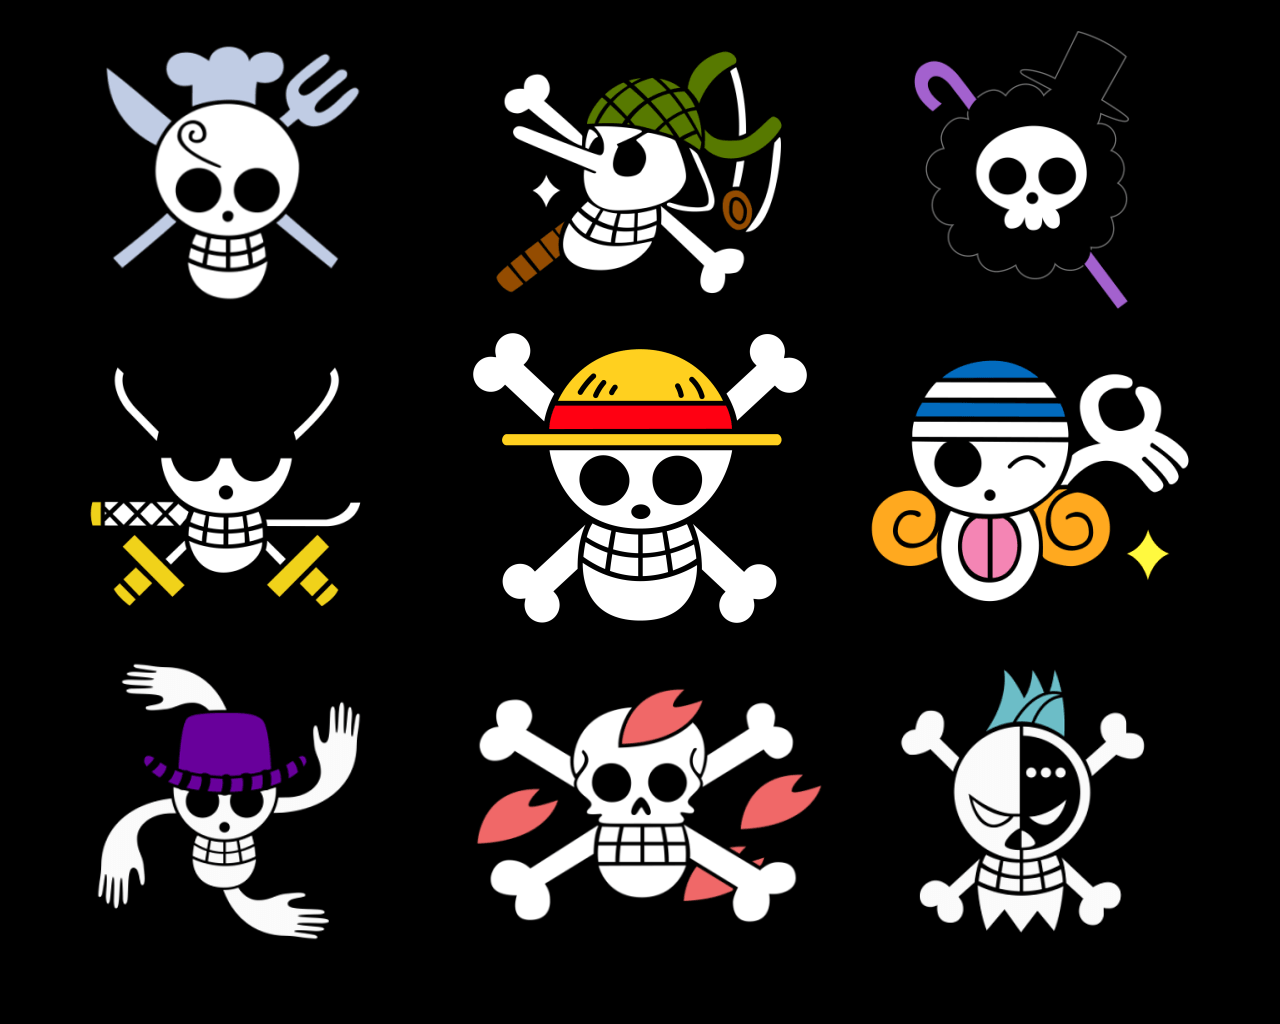 Monkey D Luffy And Crew Flag Wallpapers